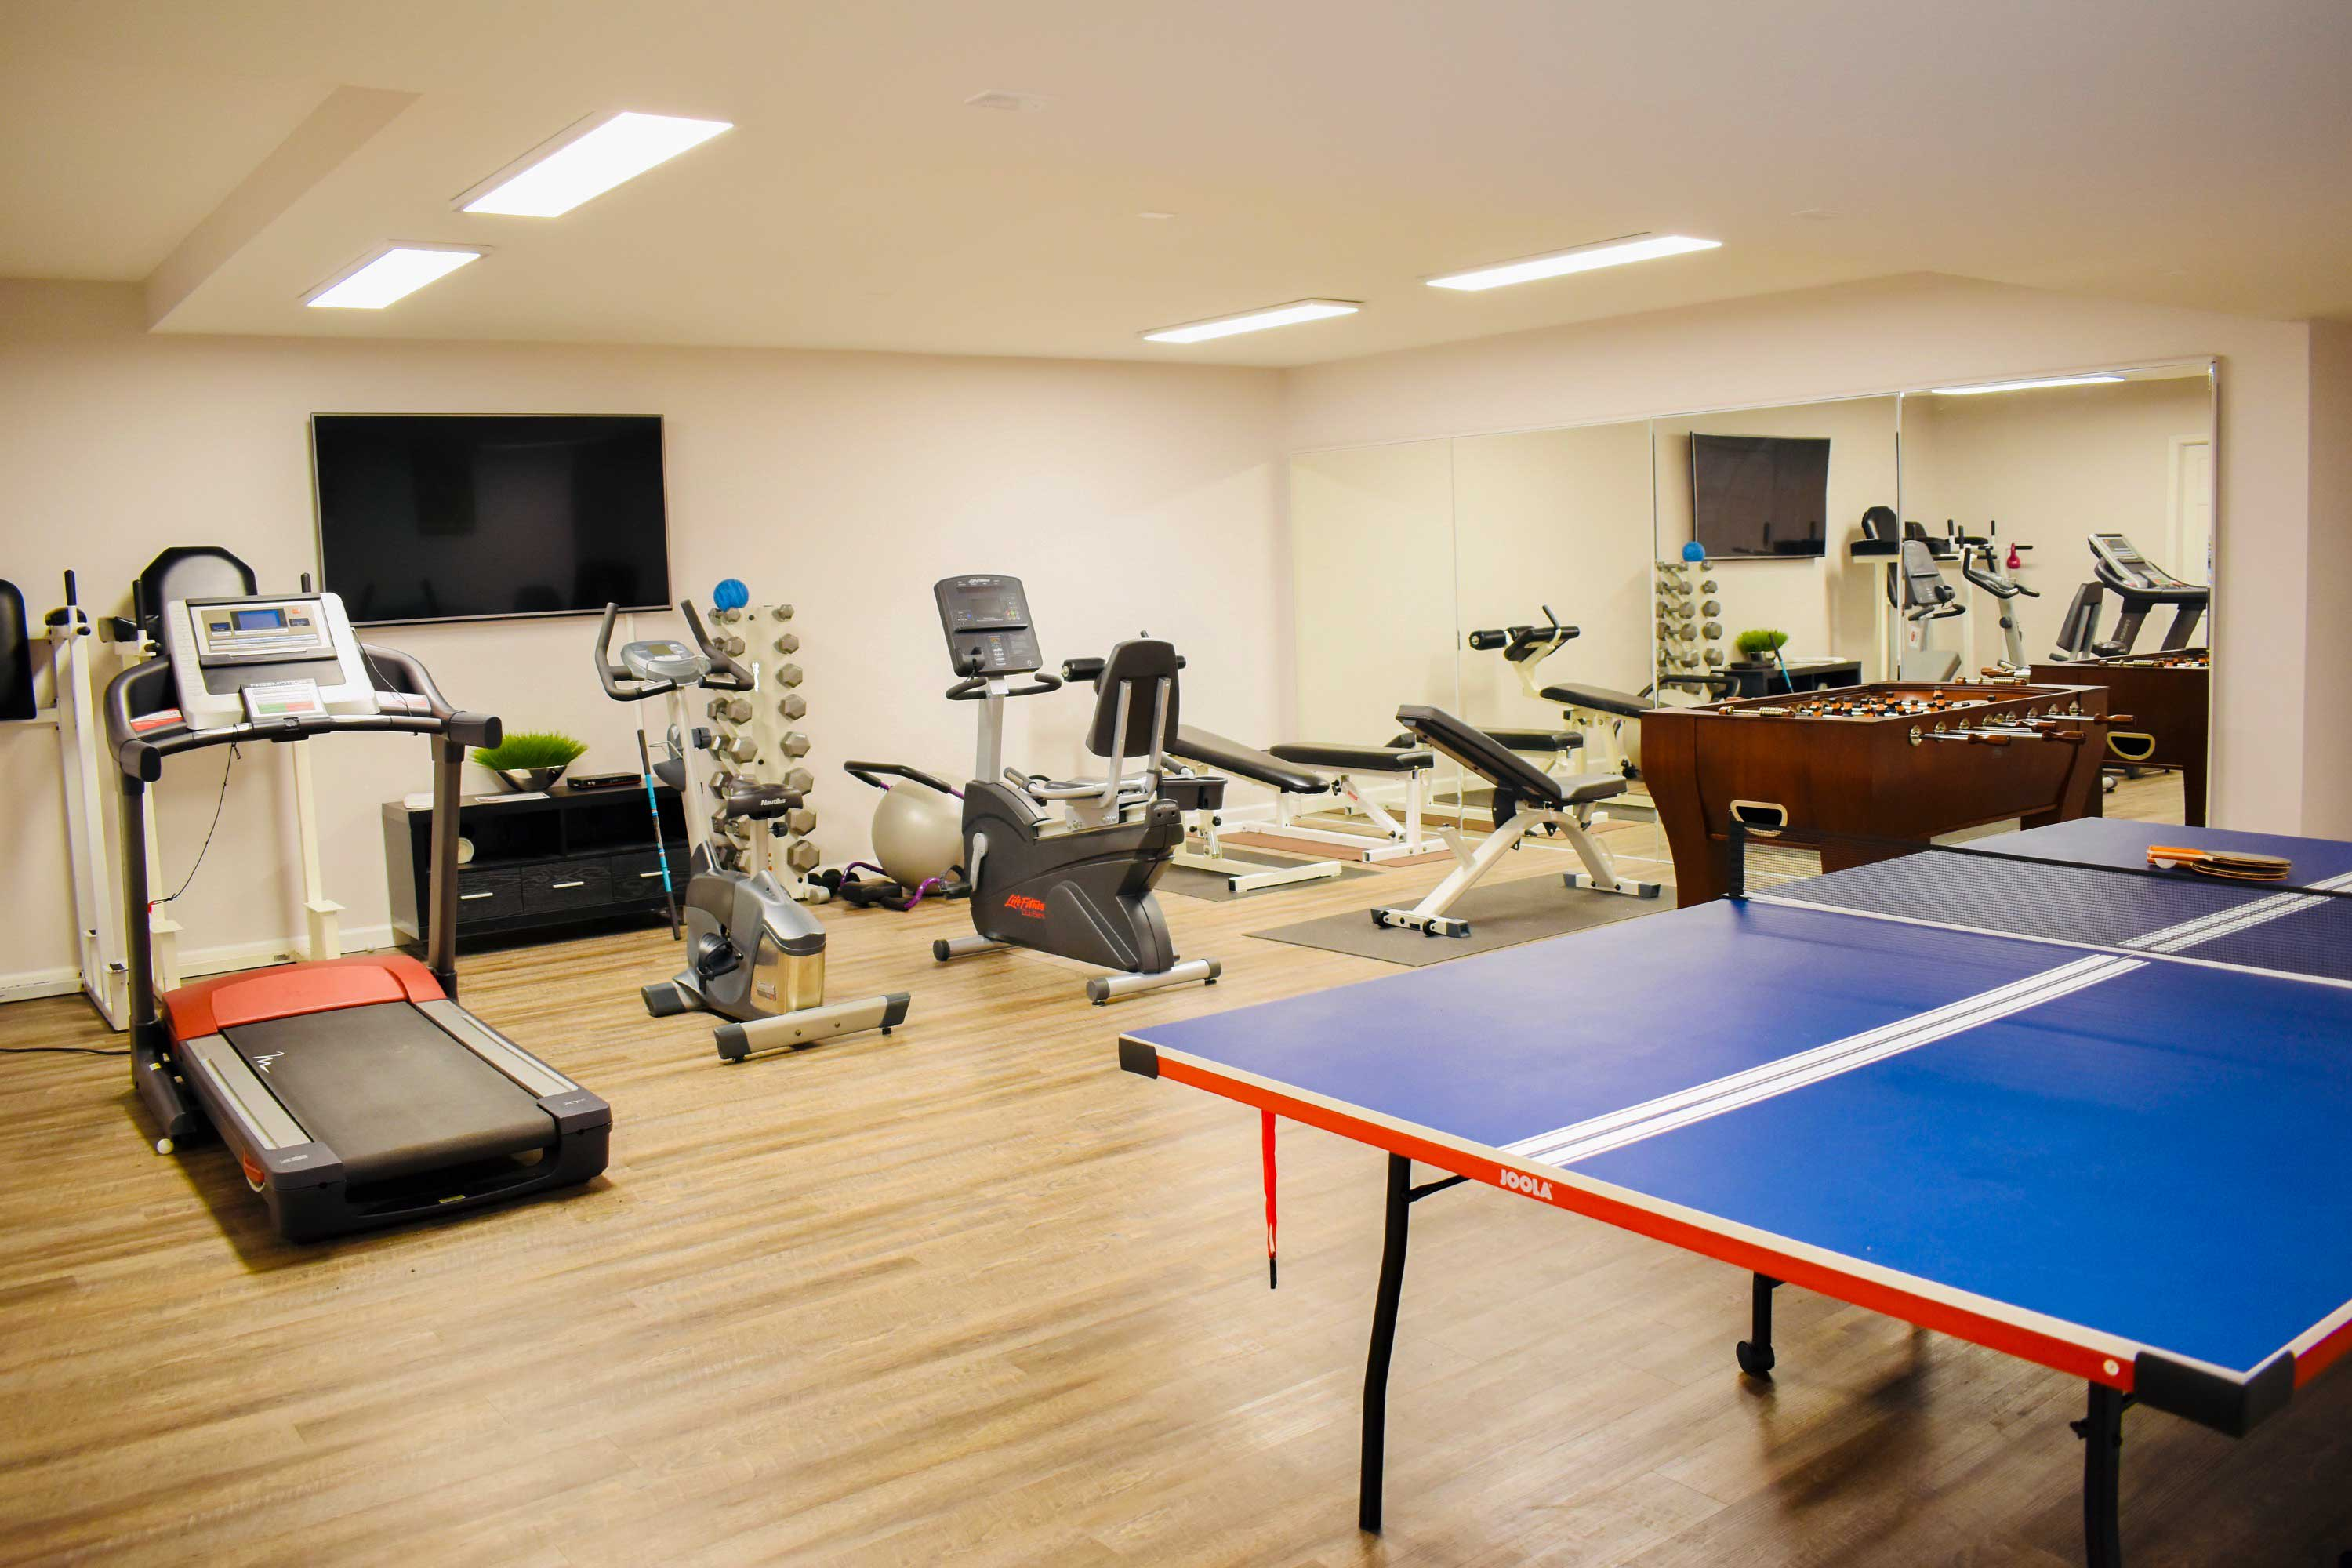 Get your workout on in the well-equipped basement fitness room.